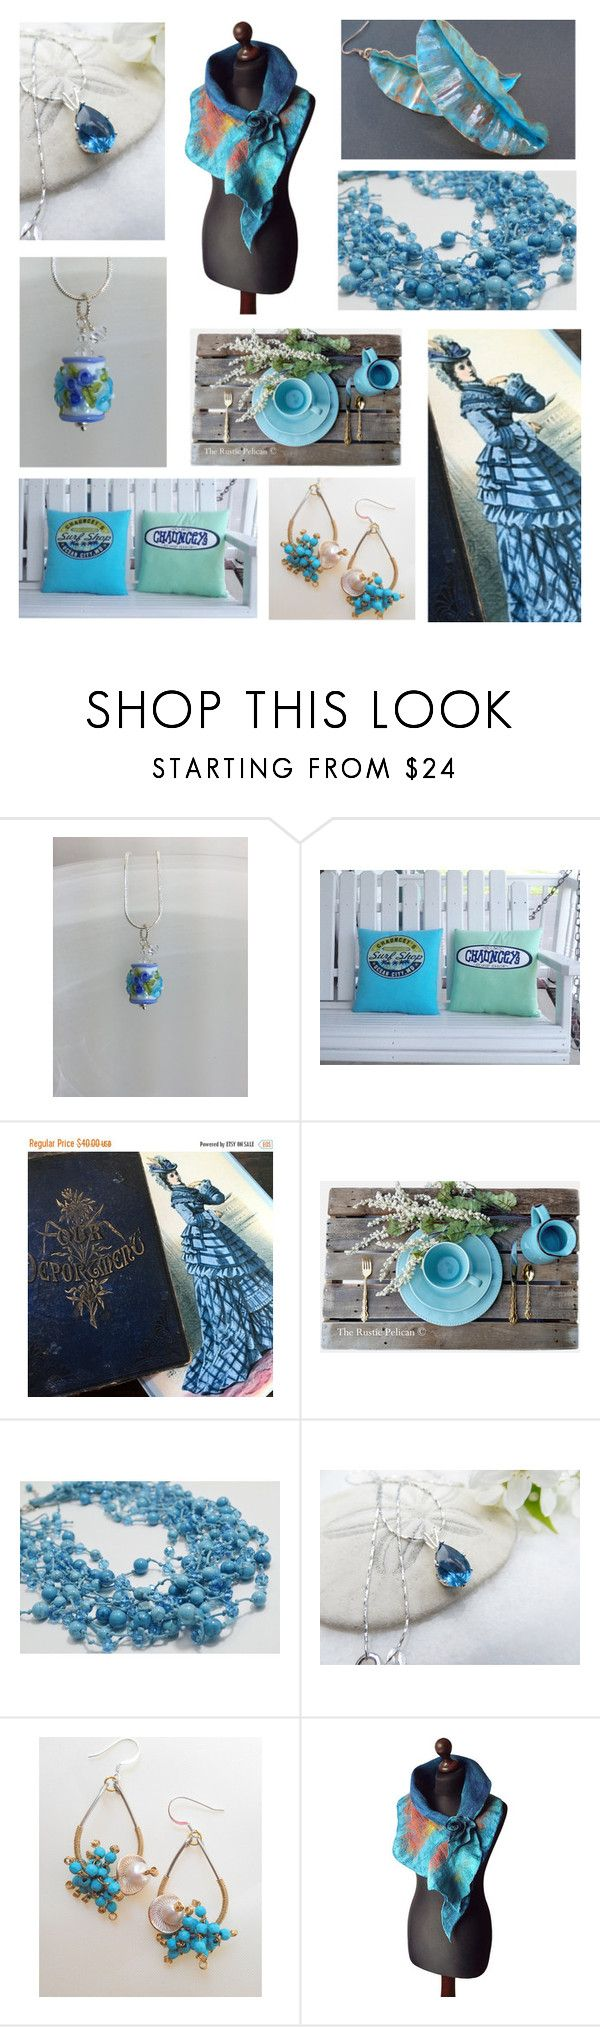 Blues Skies by inspiredbyten on Polyvore featuring Rustico, Etiquette and vintage